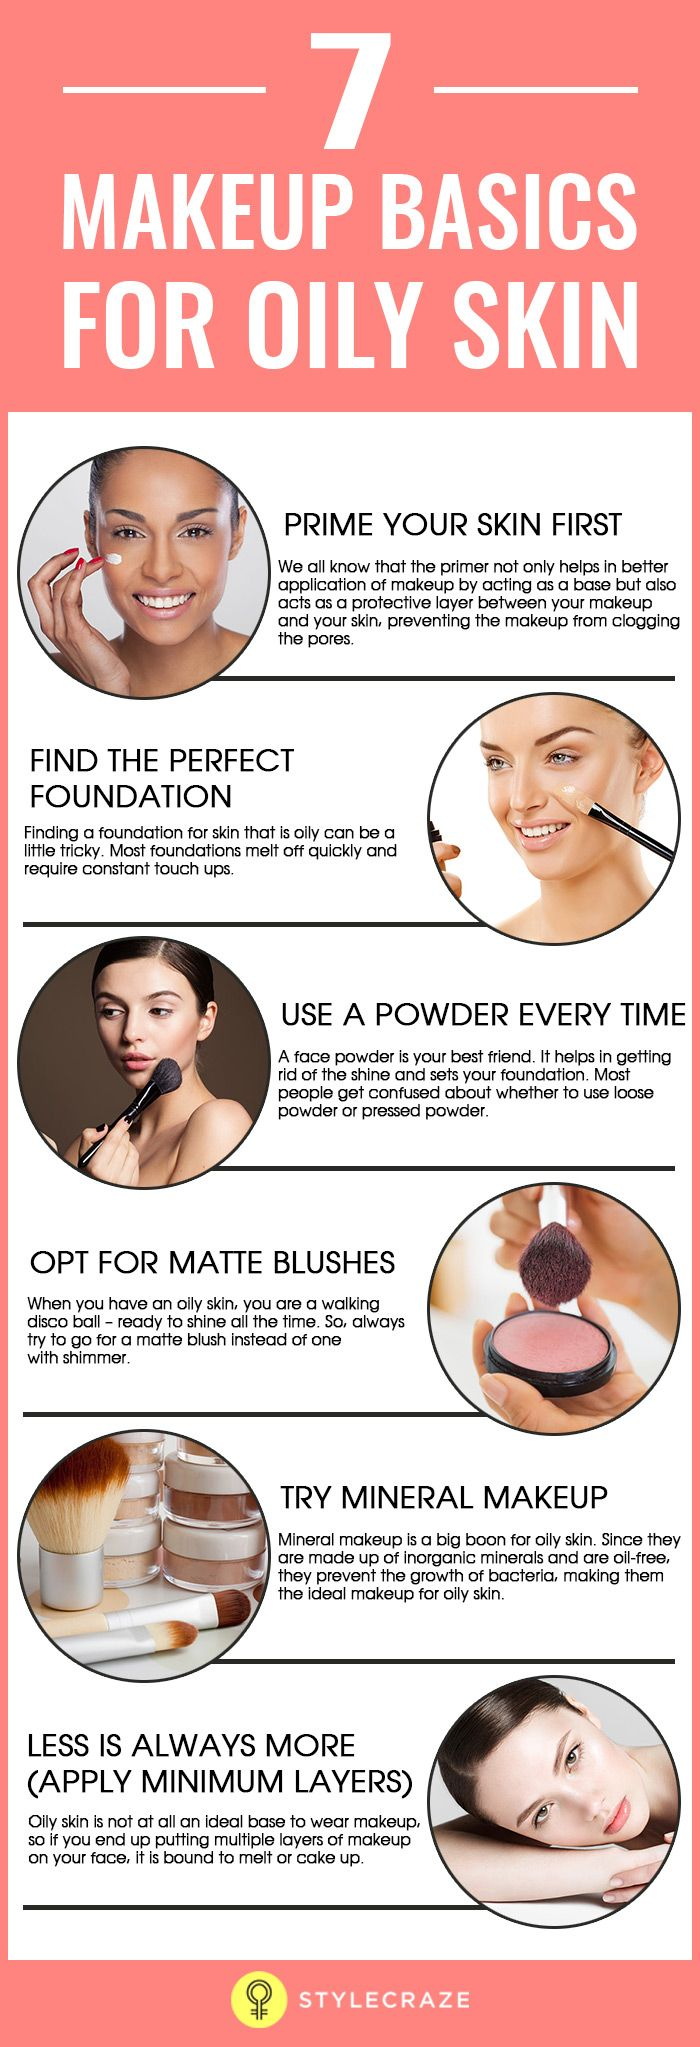 Makeup For Oily Skin 7 Best Makeup Tips for Oily Skinned